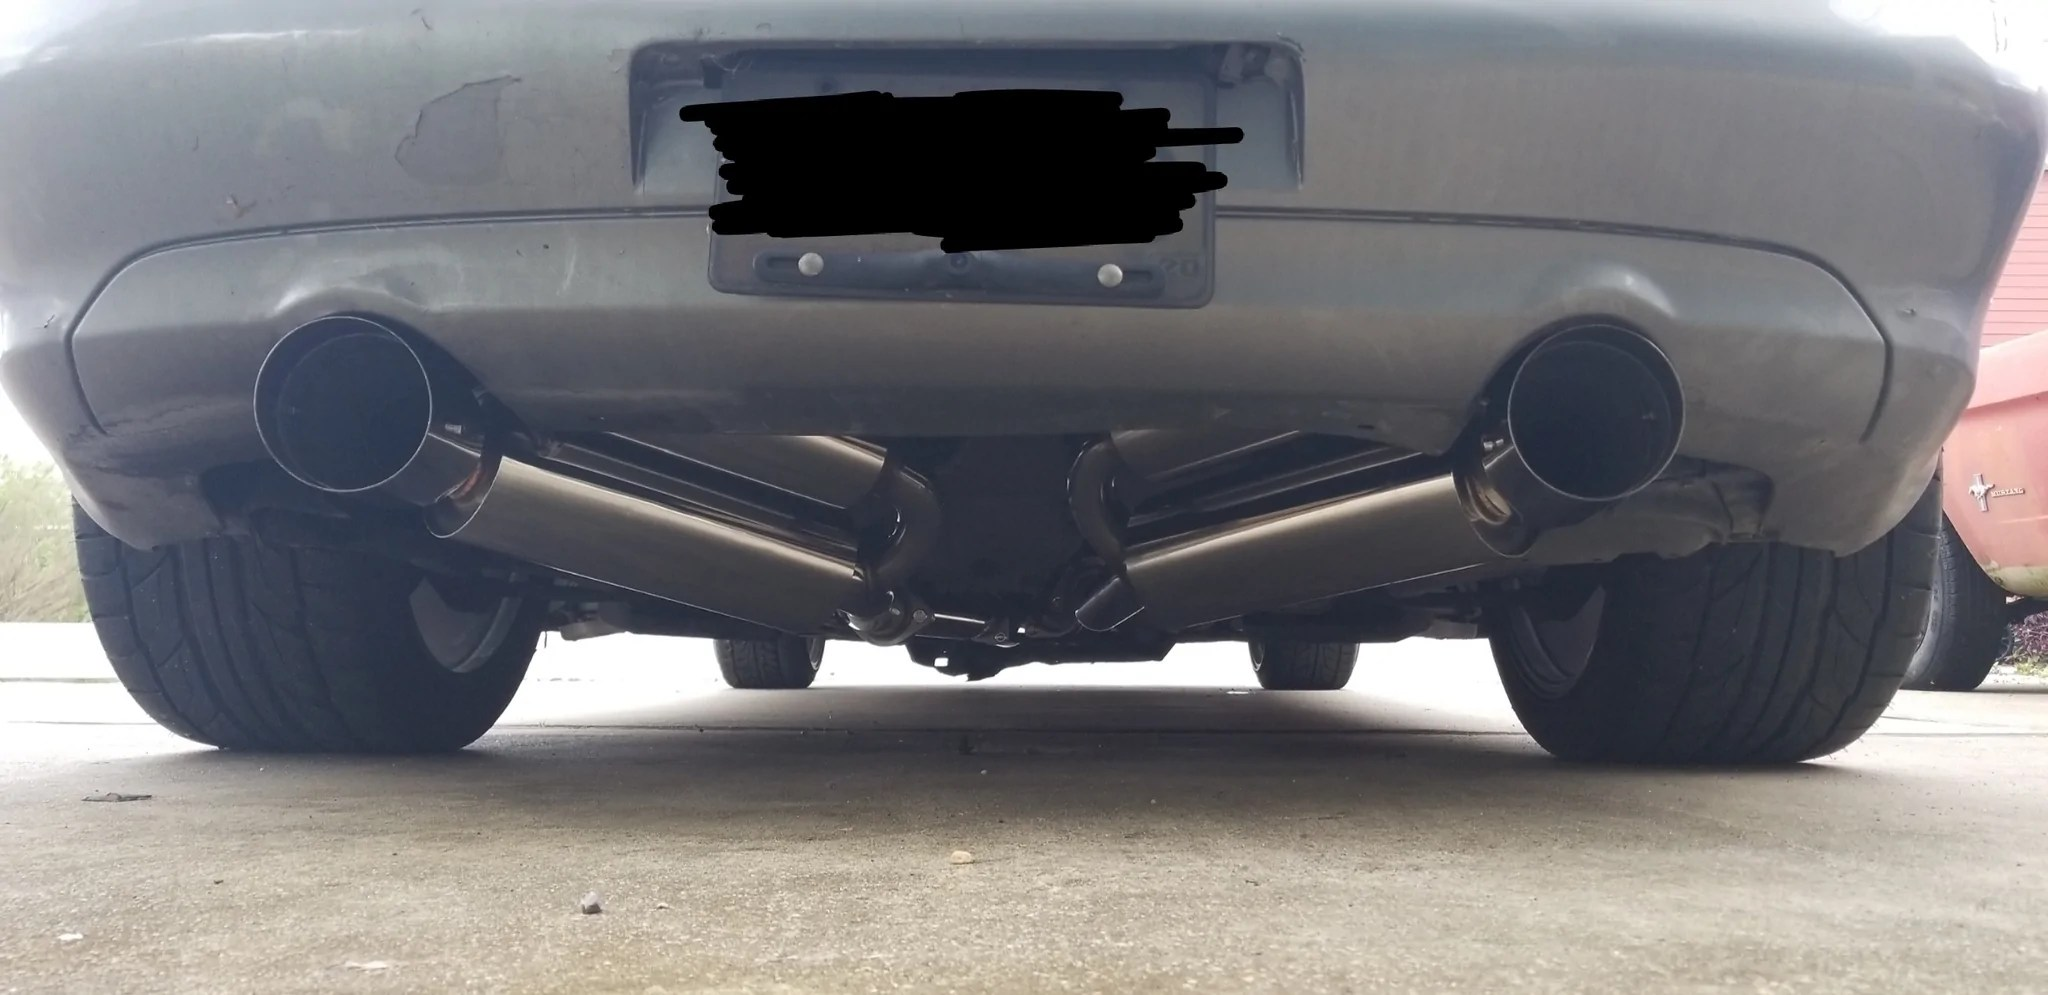 rev9 catback exhaust nissan 350z 03 08 g35 coupe rwd 03 06 polished 4 5 tips